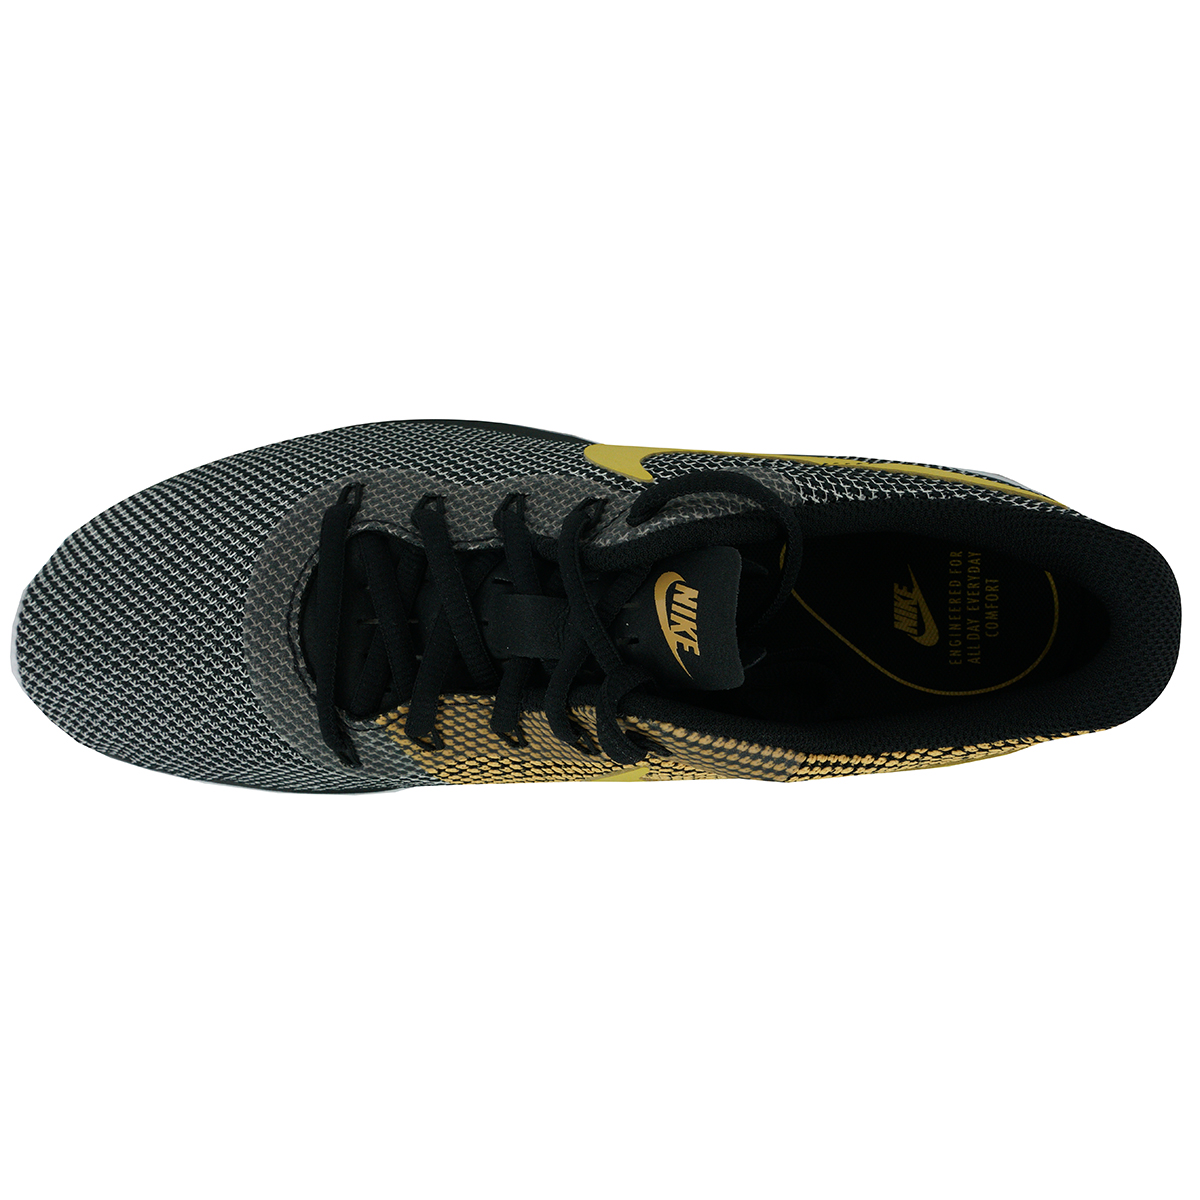 Nike-Men-039-s-Tanjun-Racer-Running-Shoes thumbnail 6